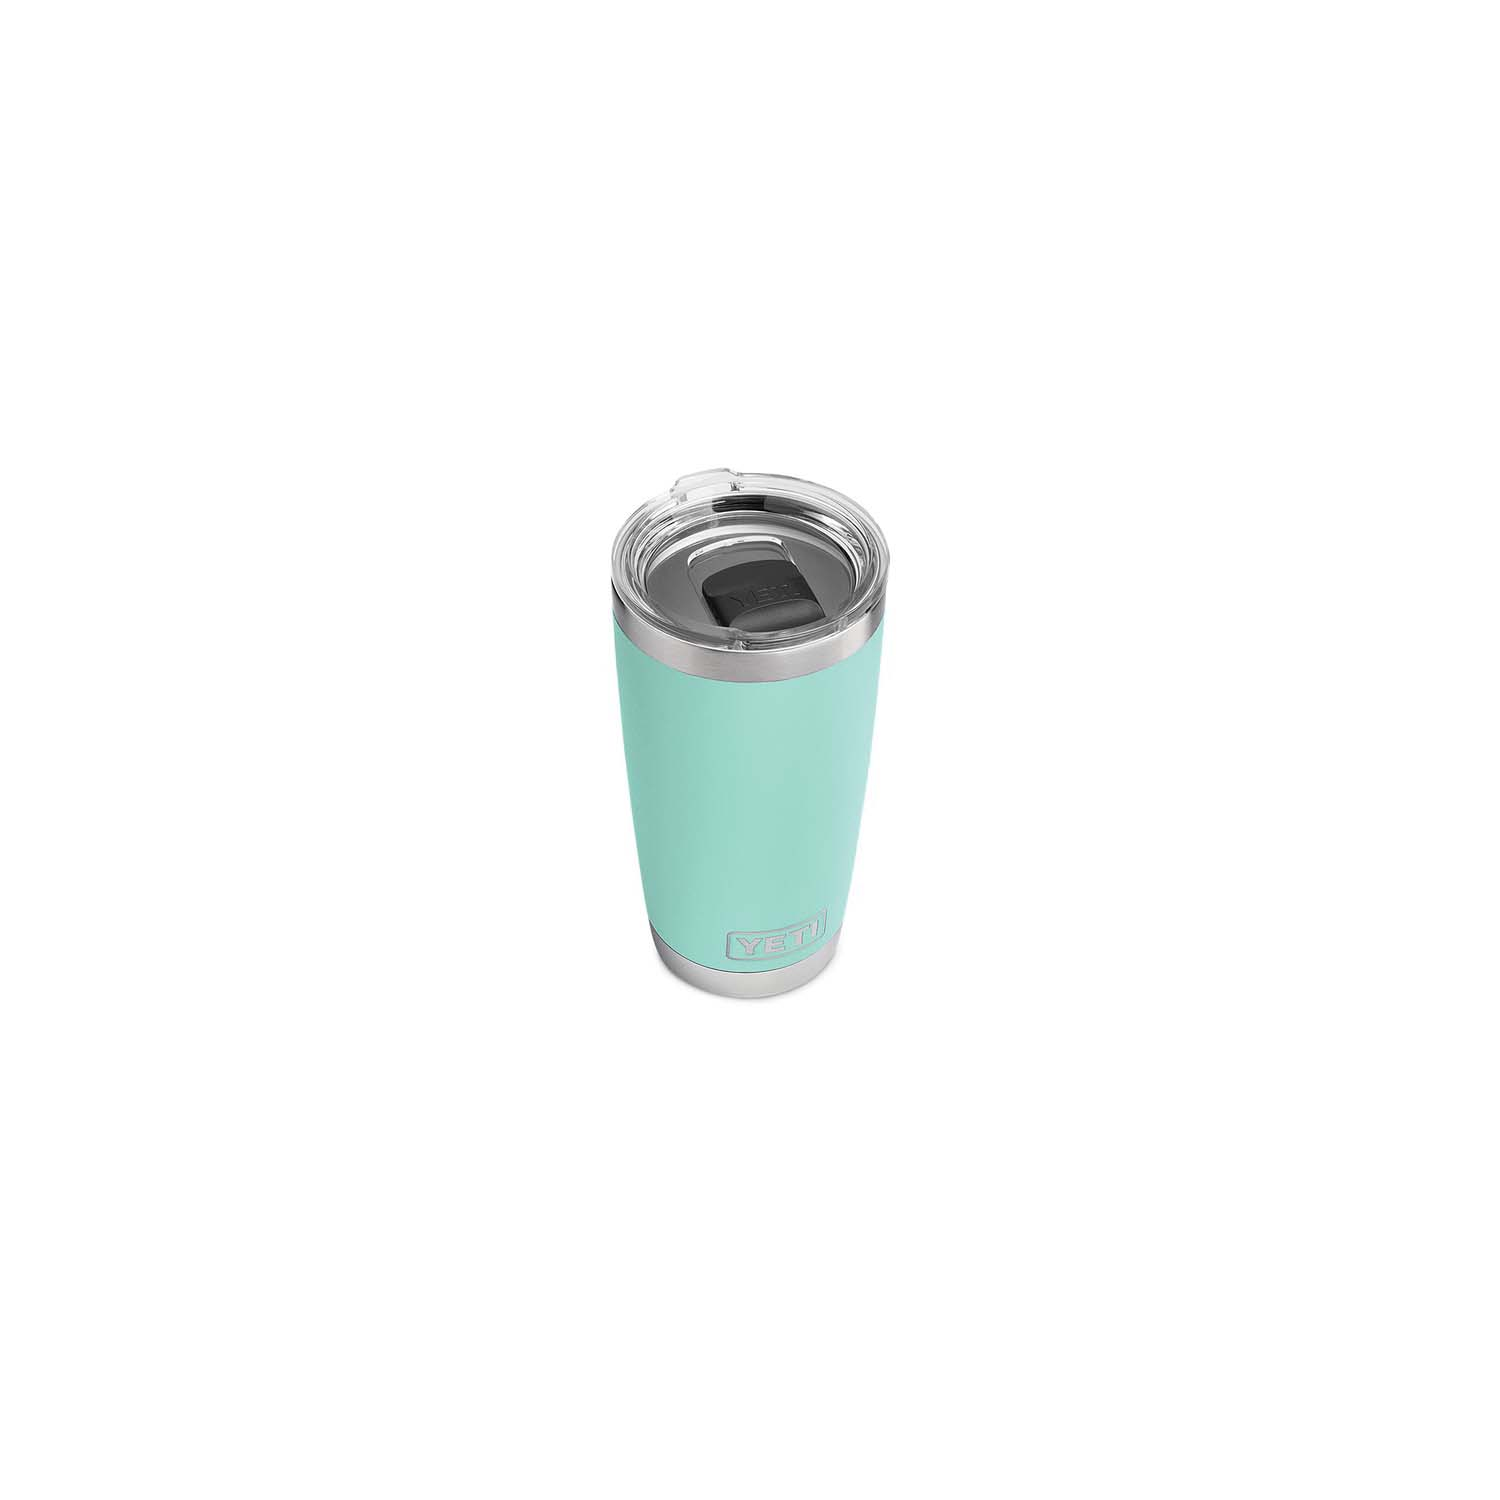 Picture of YETI Rambler 21070060016 Tumbler, 20 oz Capacity, Stainless Steel, Seafoam